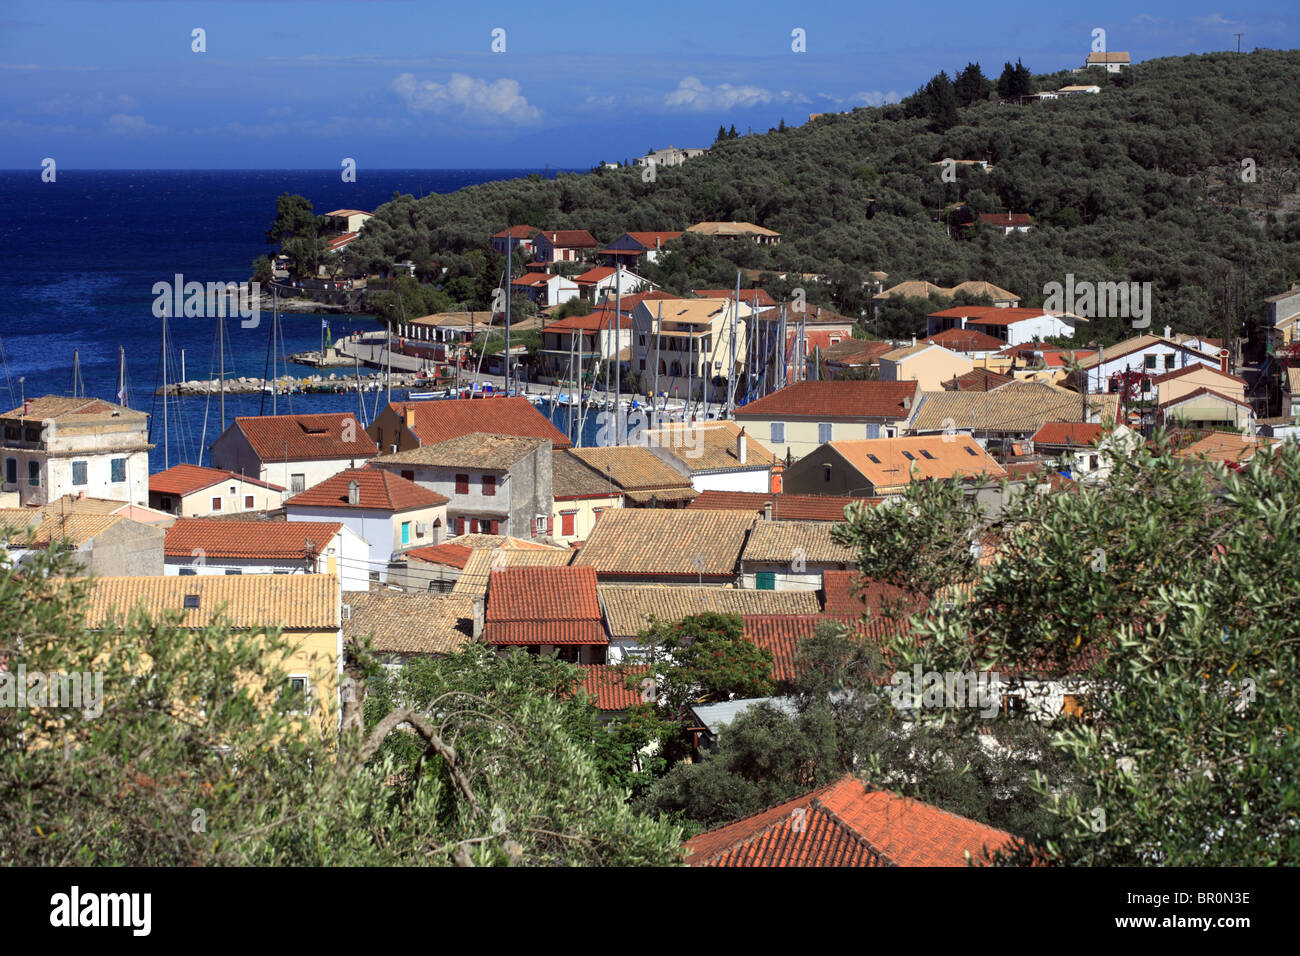 Gaios, Paxos capital town, rooftops looking out to sea, Greece, Greek. - Stock Image